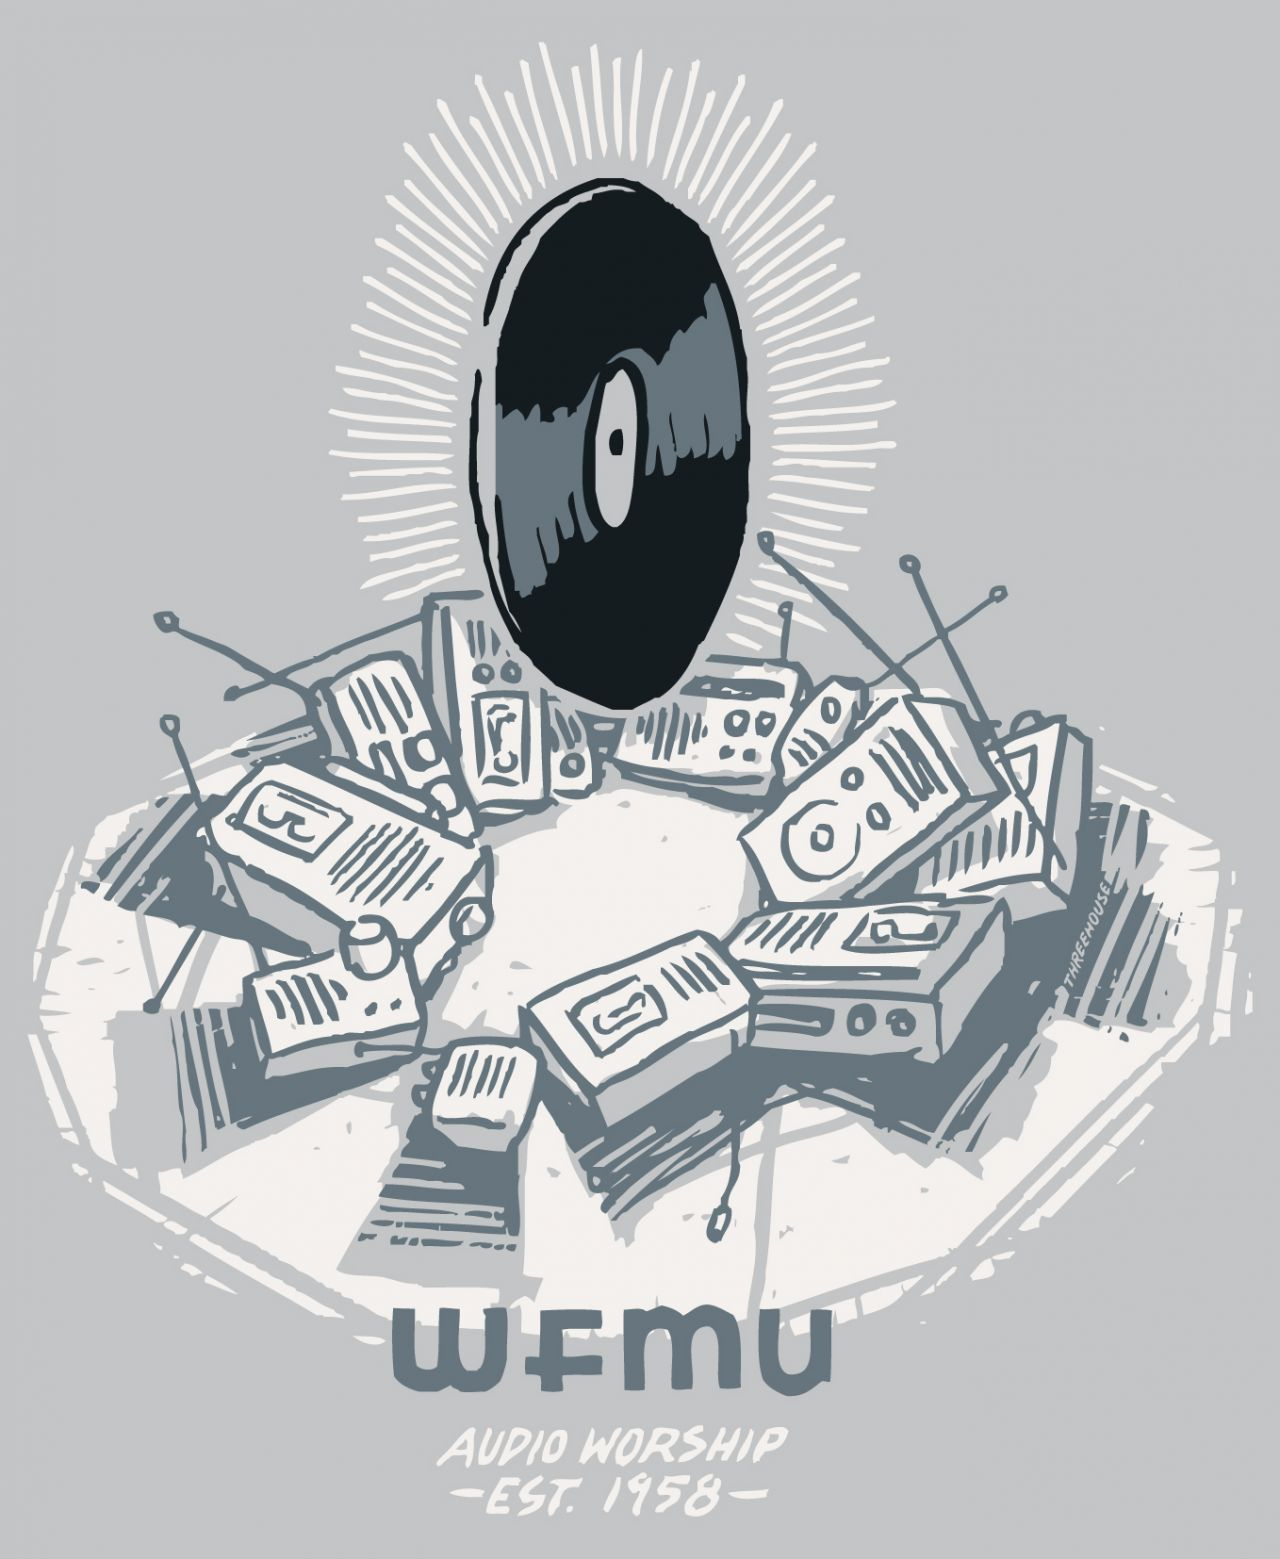 Klasse 3h WFMU's Audio Worship